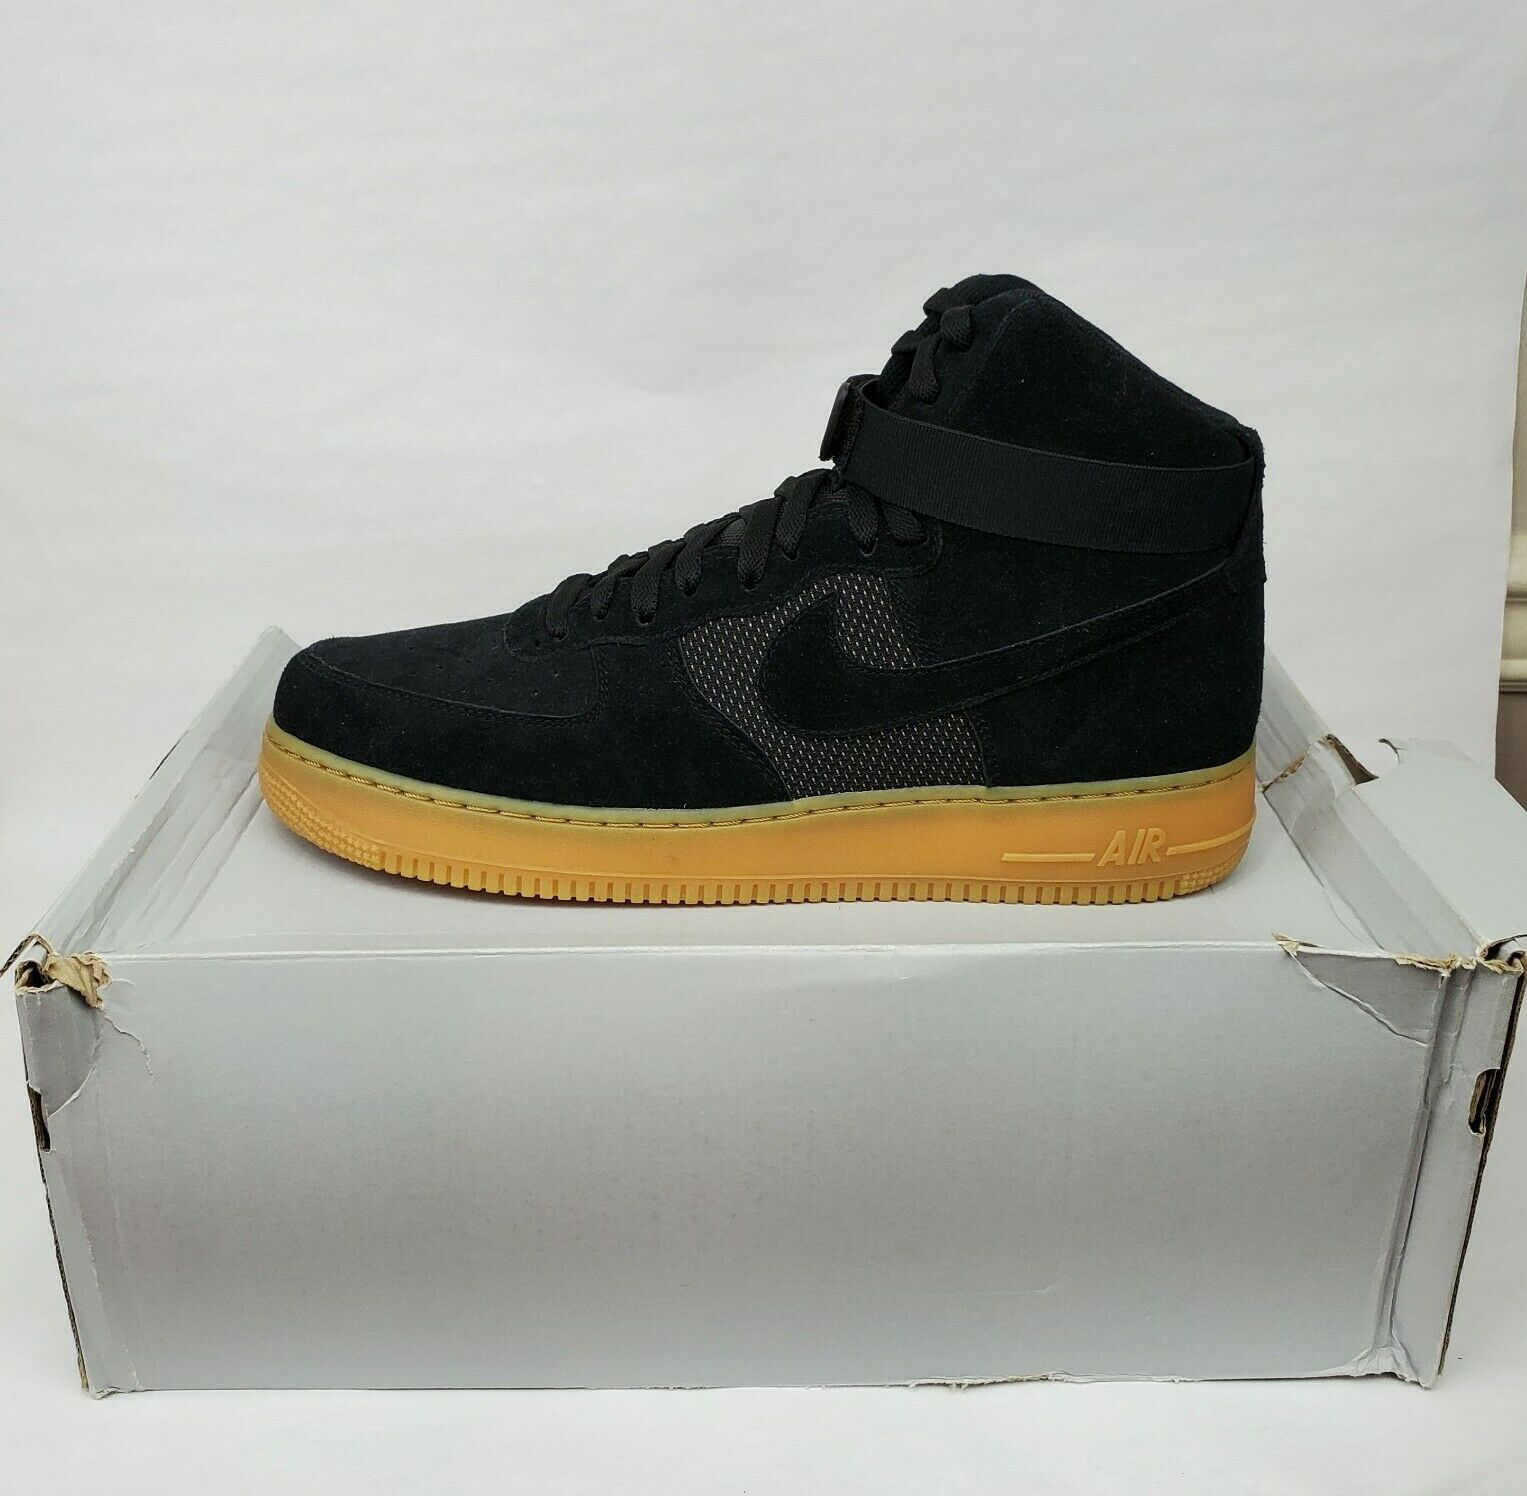 New Nike Size 12 M Air Force 1 High 07 Lv8 Black Gum Light Brown 806403 003 For Sale Online